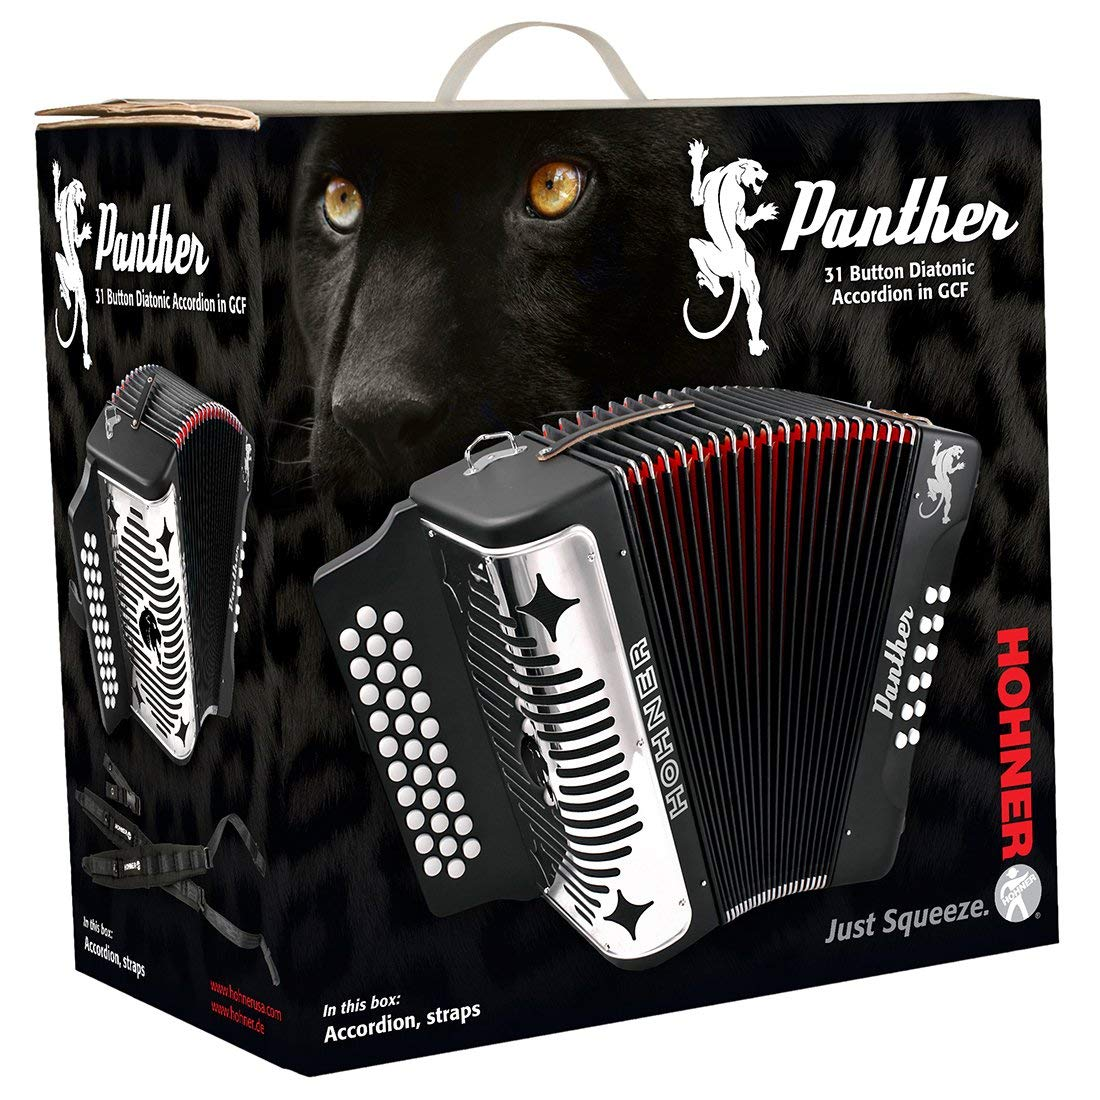 Hohner Panther 3100FB Diatonic Accordion Comprehensive Starter Kit with Gig Bag, Instruction Book and Cleaning Cloth by Hohner Accordions (Image #4)